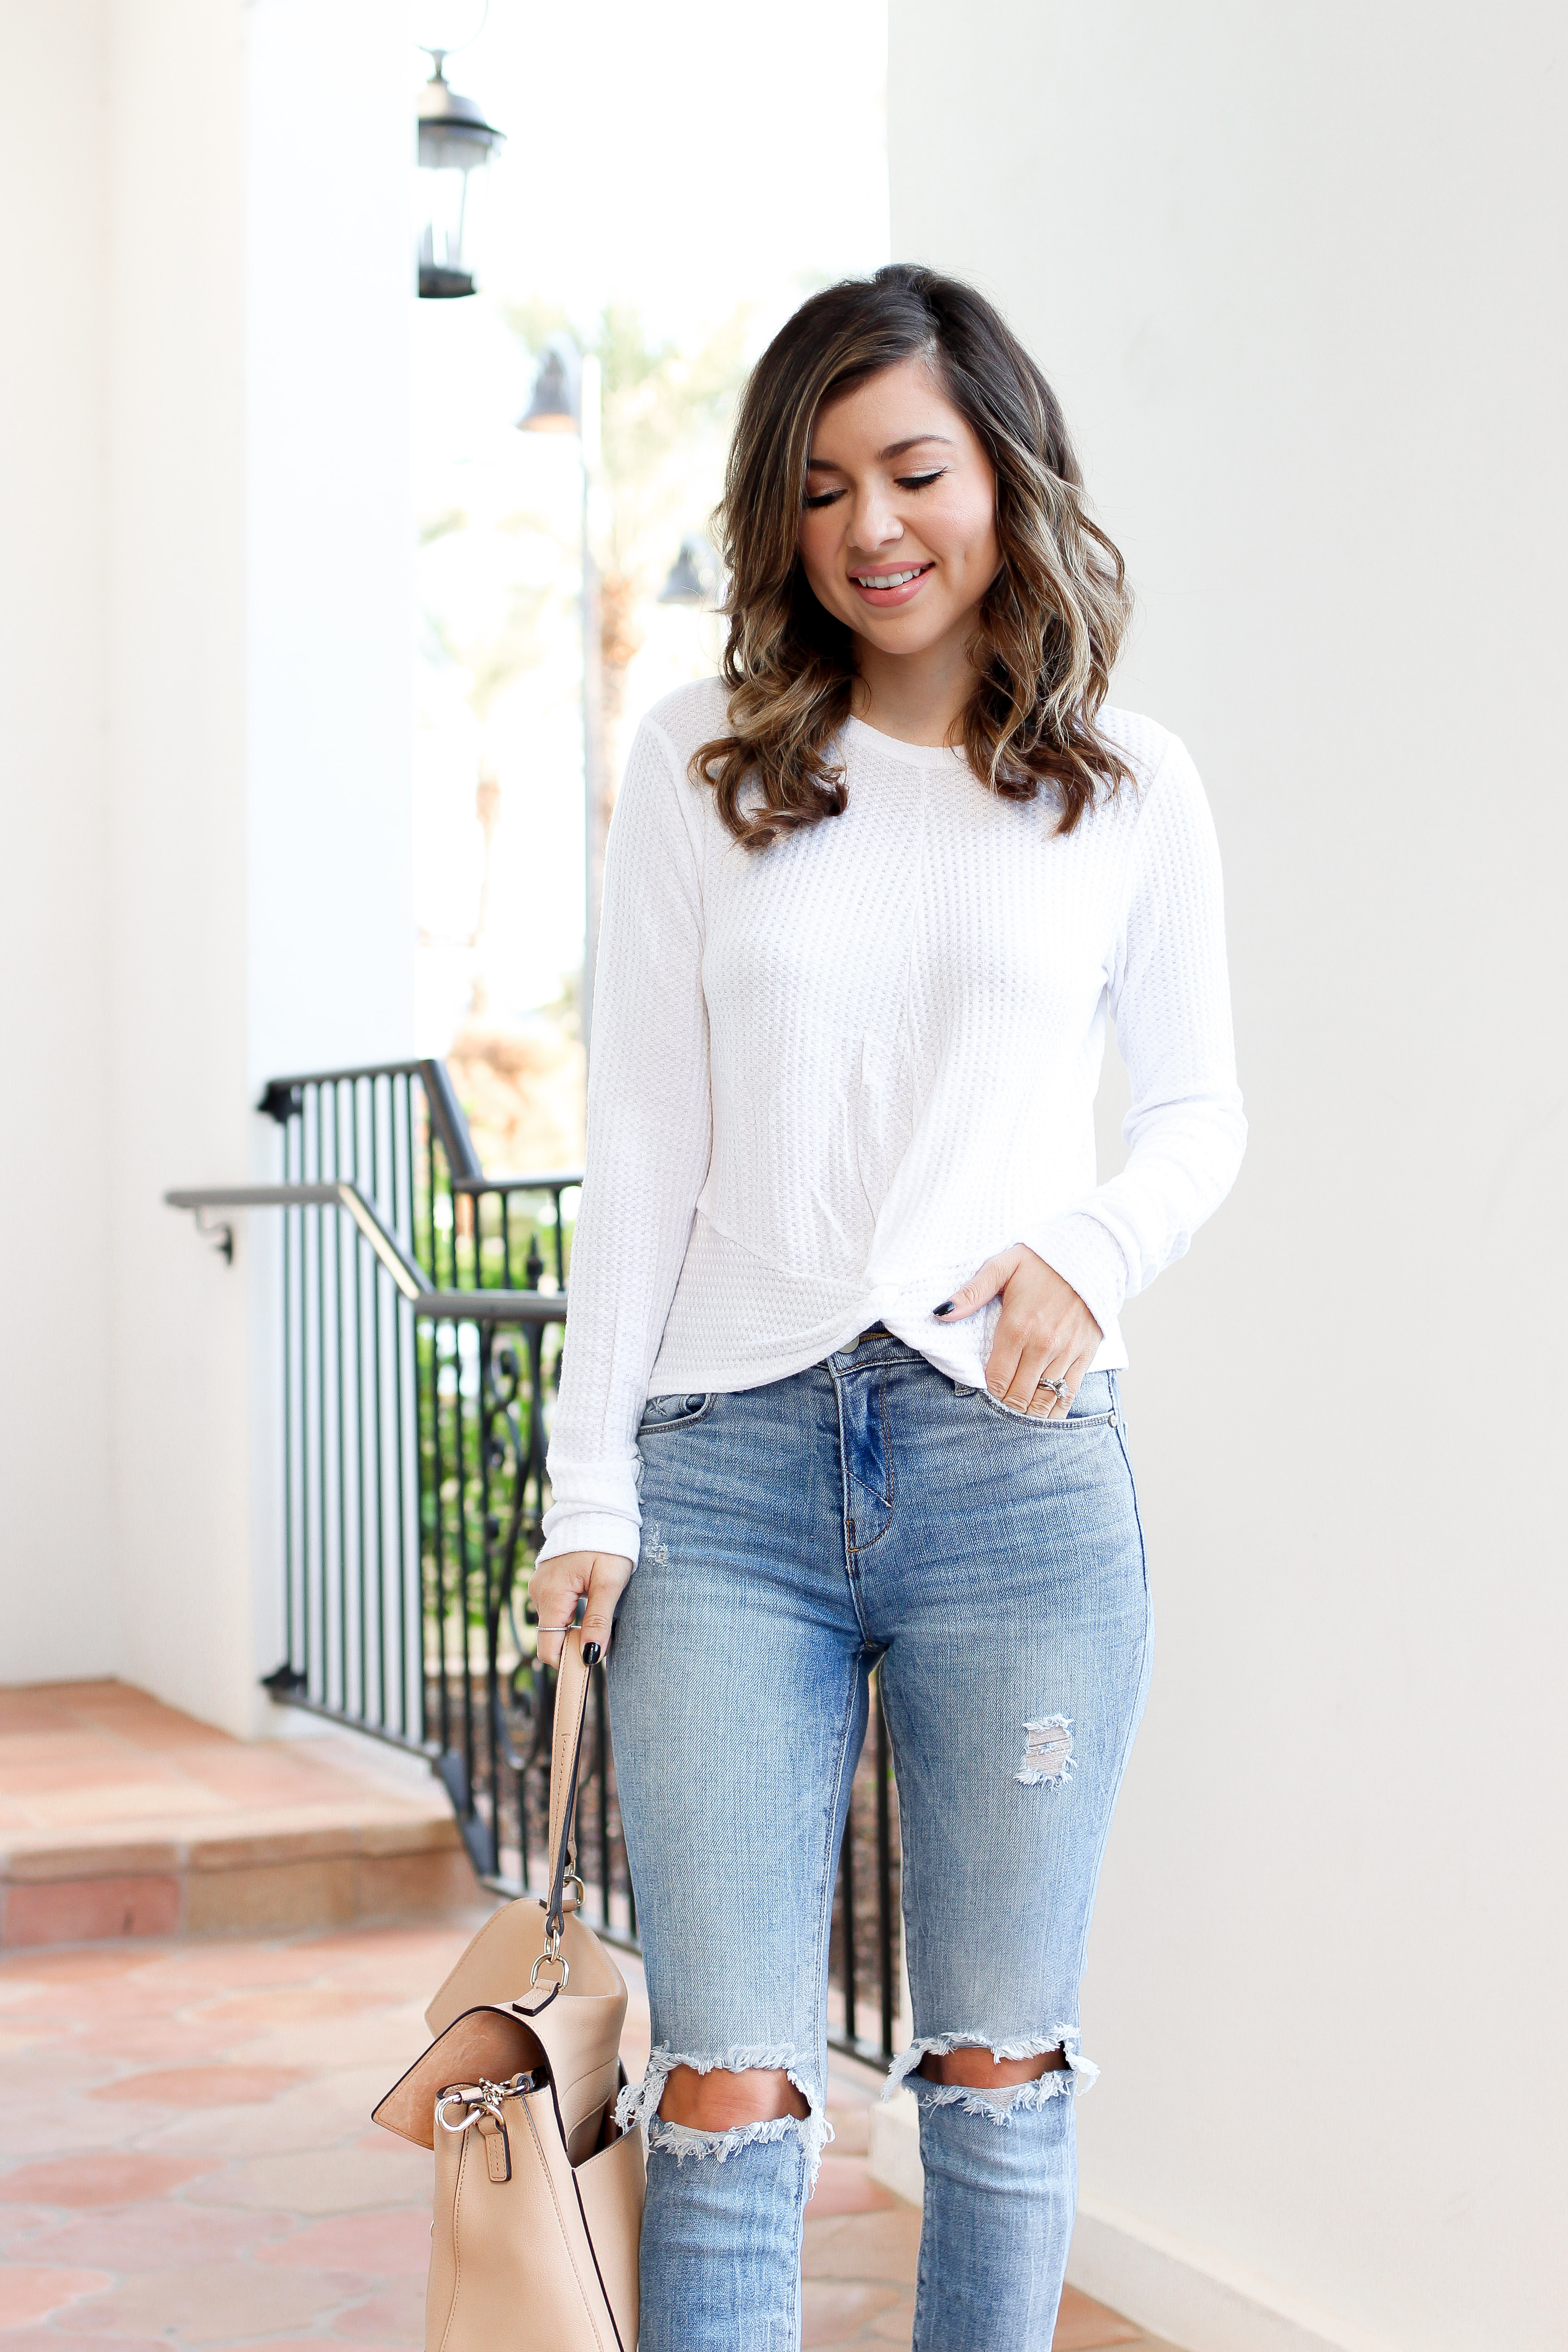 knotted front tops - knot tops - casual jean outfit - best fall outfits - simply sutter